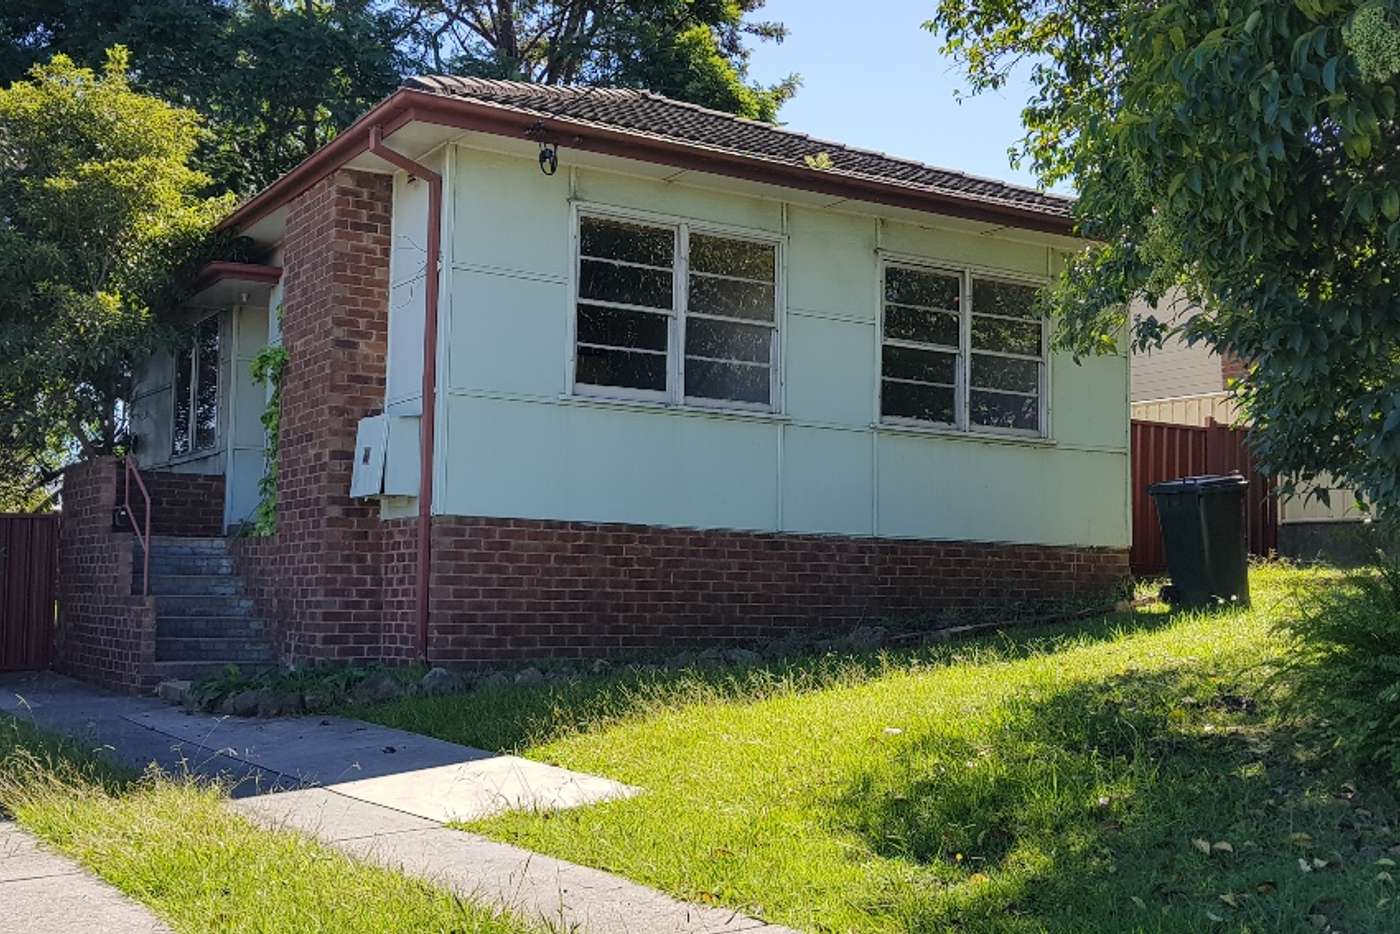 Main view of Homely house listing, 26 Mount Street, Mount Saint Thomas NSW 2500